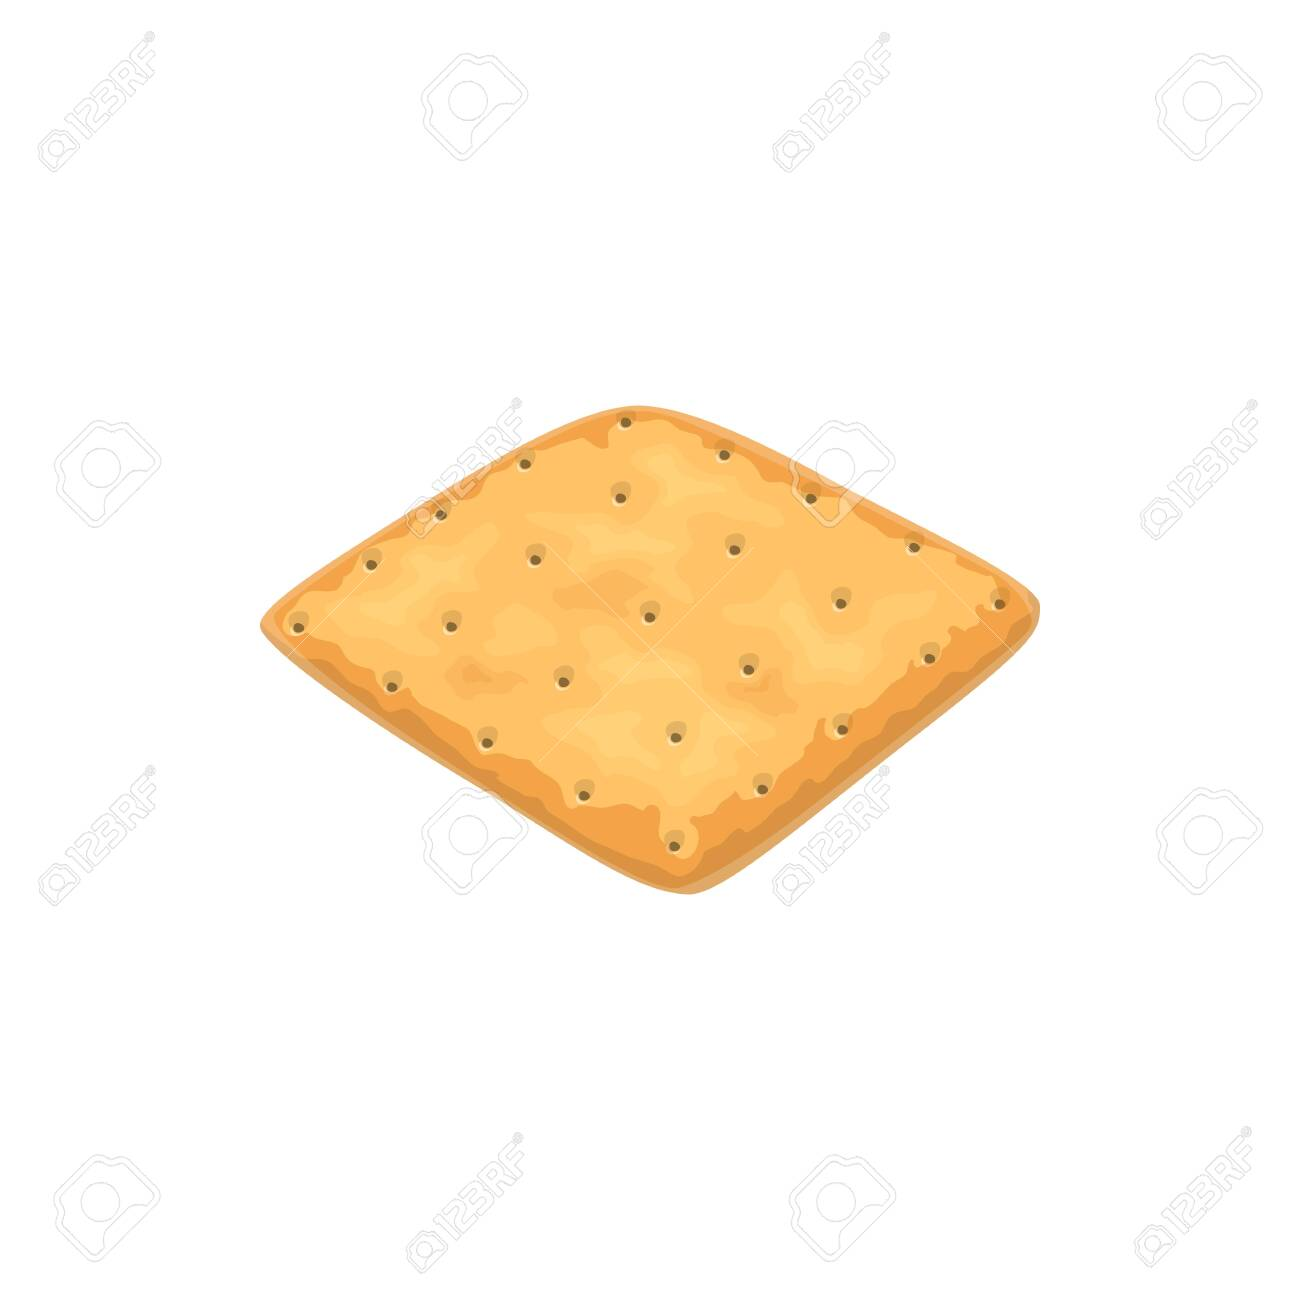 square cracker isolated wholemeal oat biscuit vector wheat salty royalty free cliparts vectors and stock illustration image 137233846 square cracker isolated wholemeal oat biscuit vector wheat salty